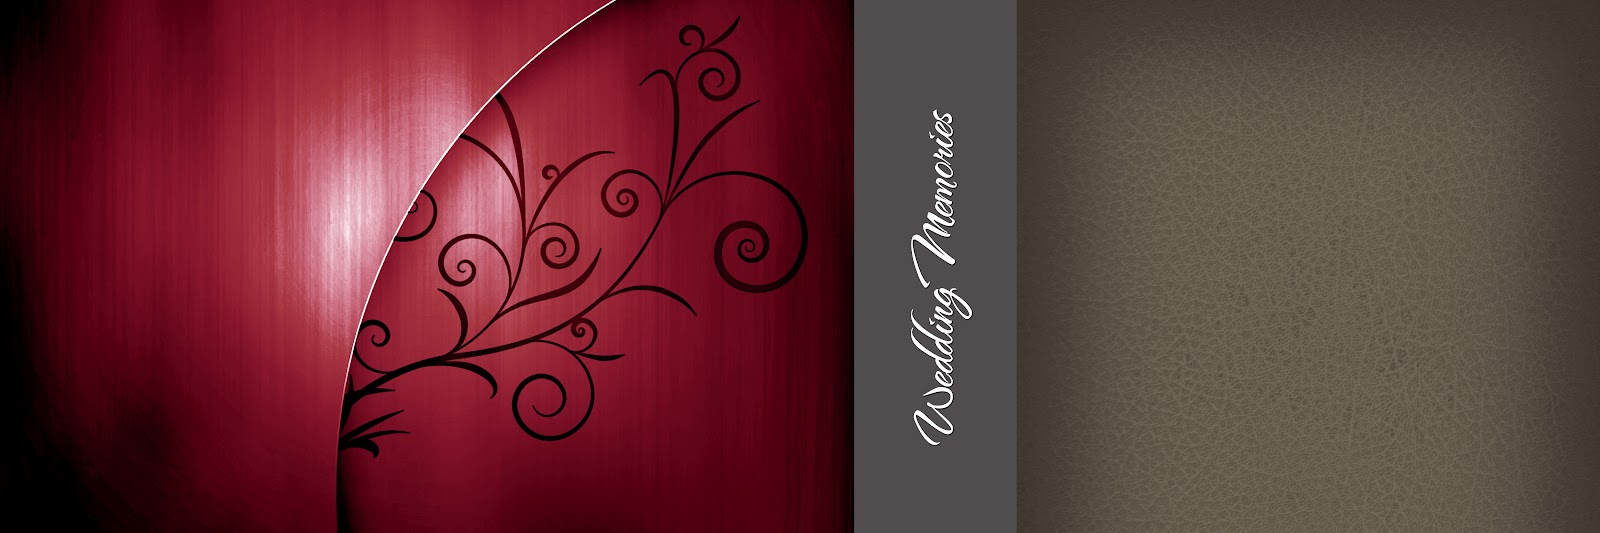 8 Photoshop PSD Files For Wedding Albums Images